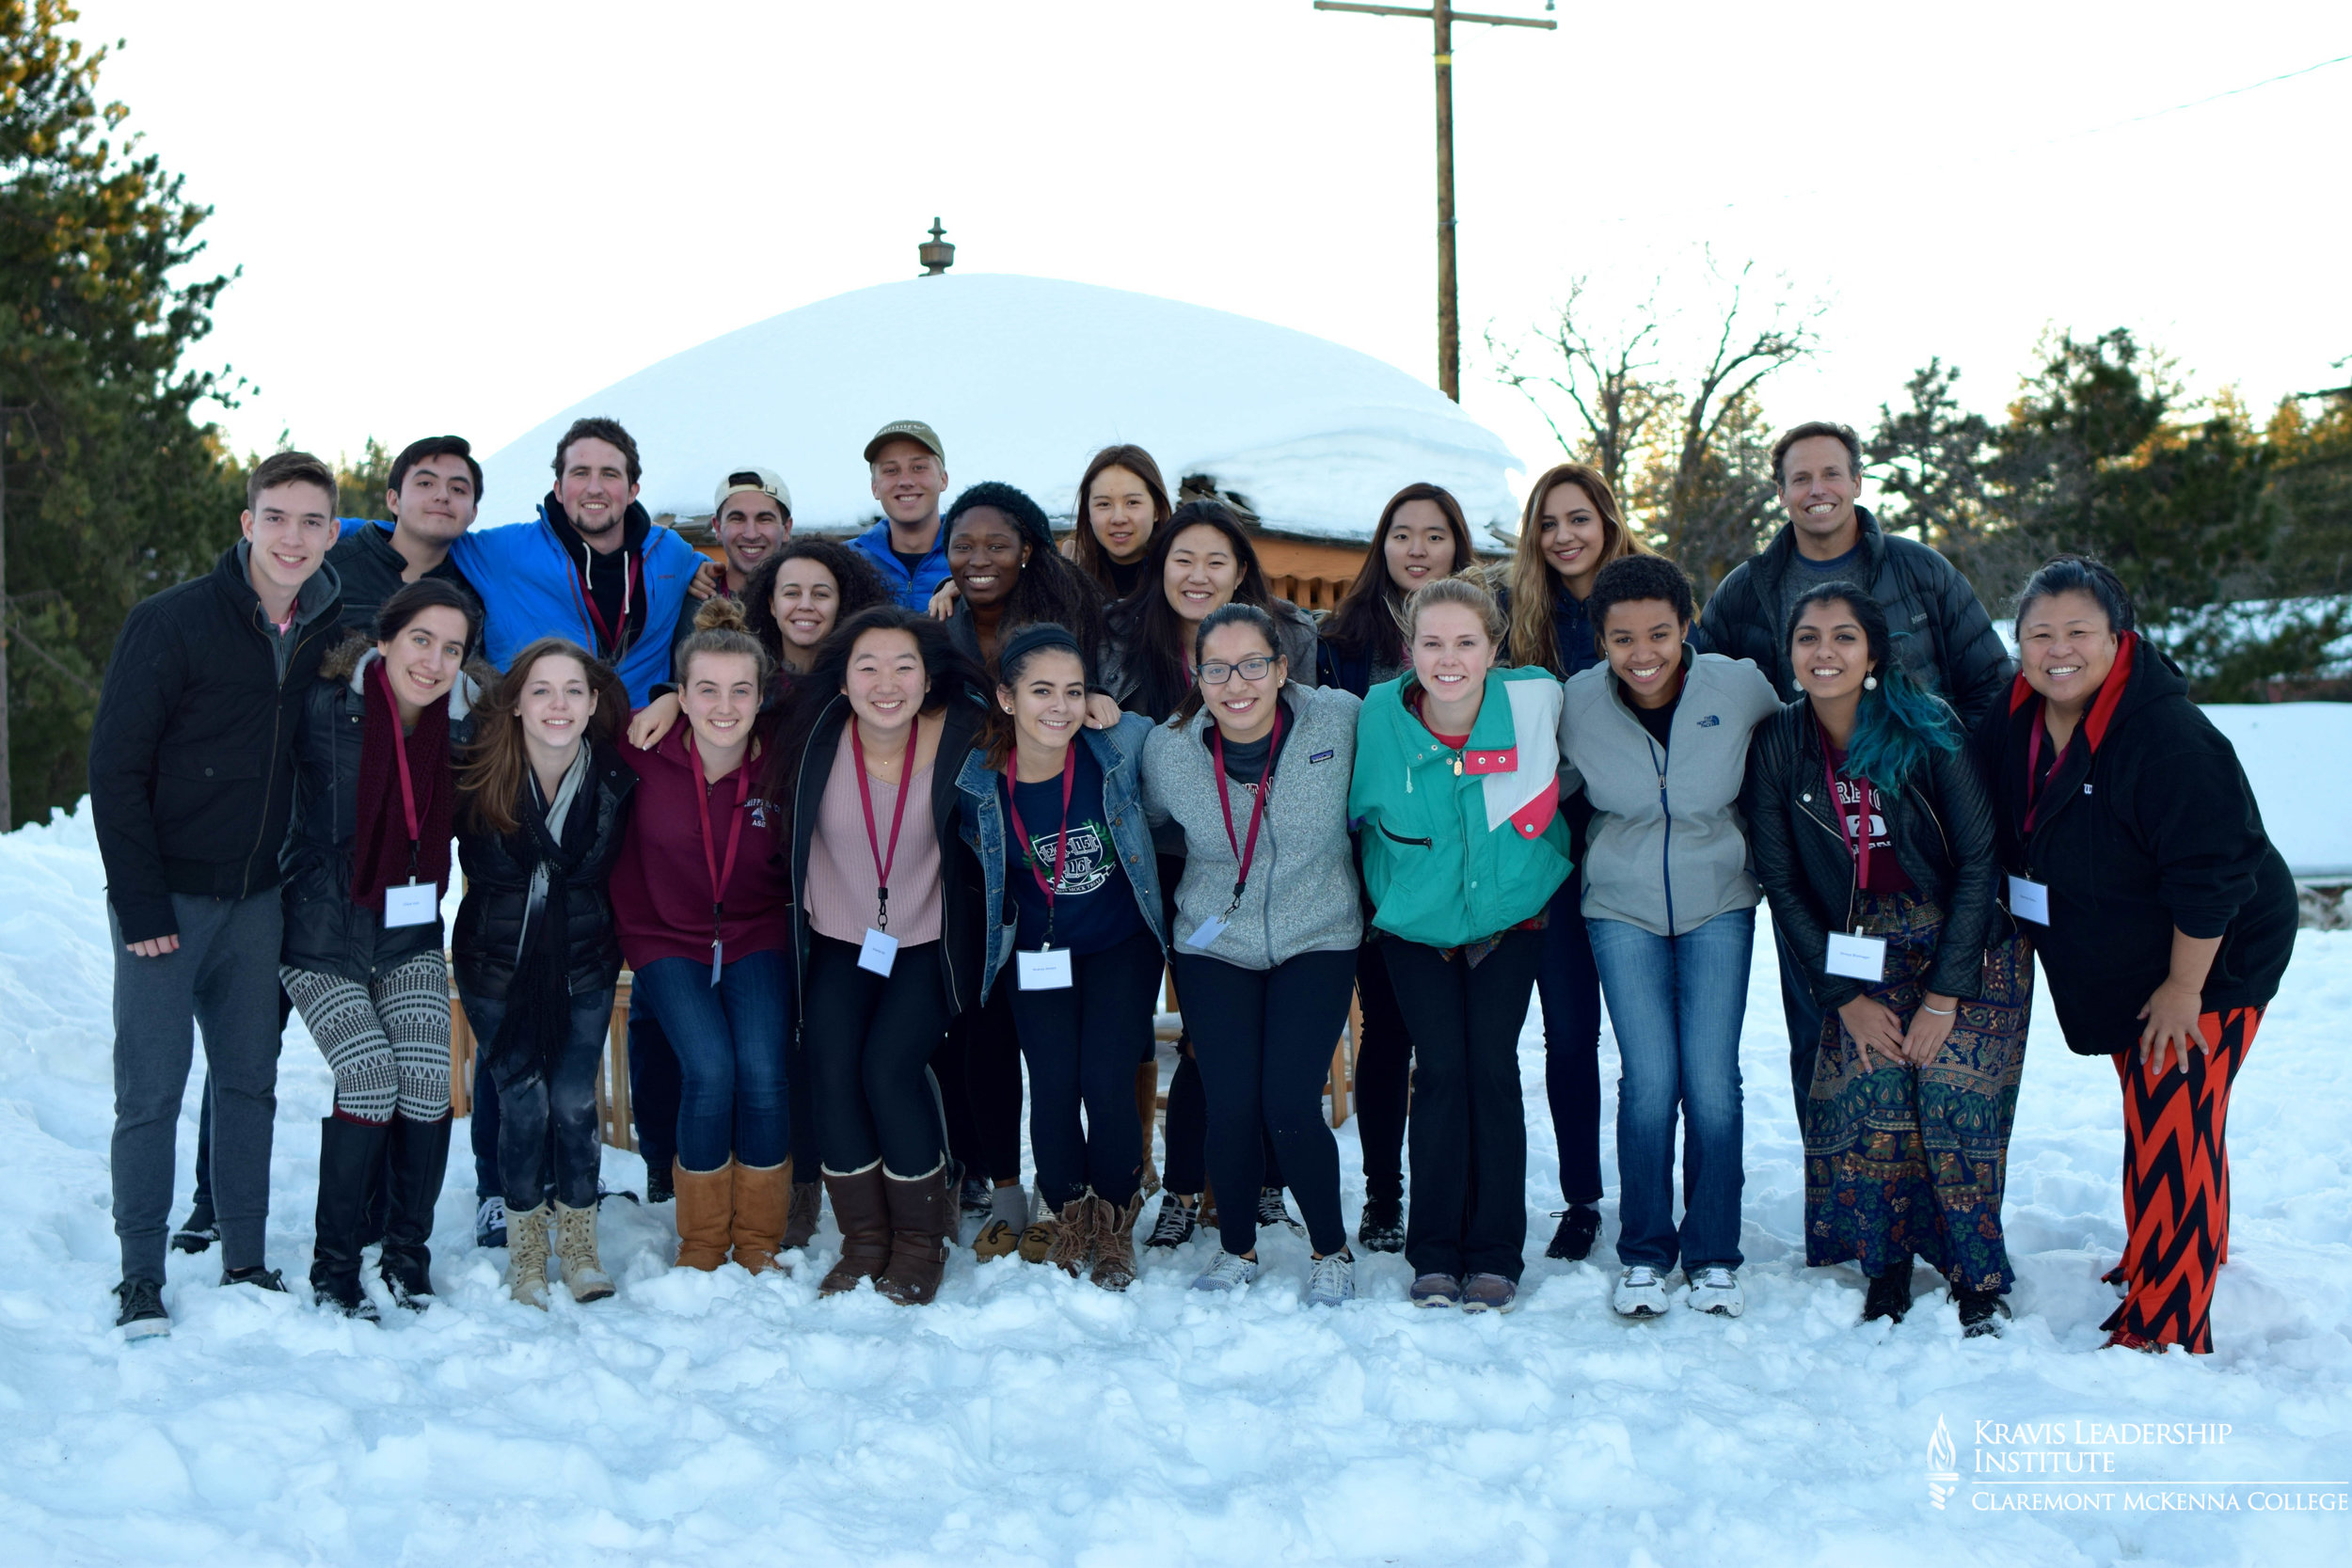 GROUP PHOTO: of the team of students and staff that participated in the retreat.